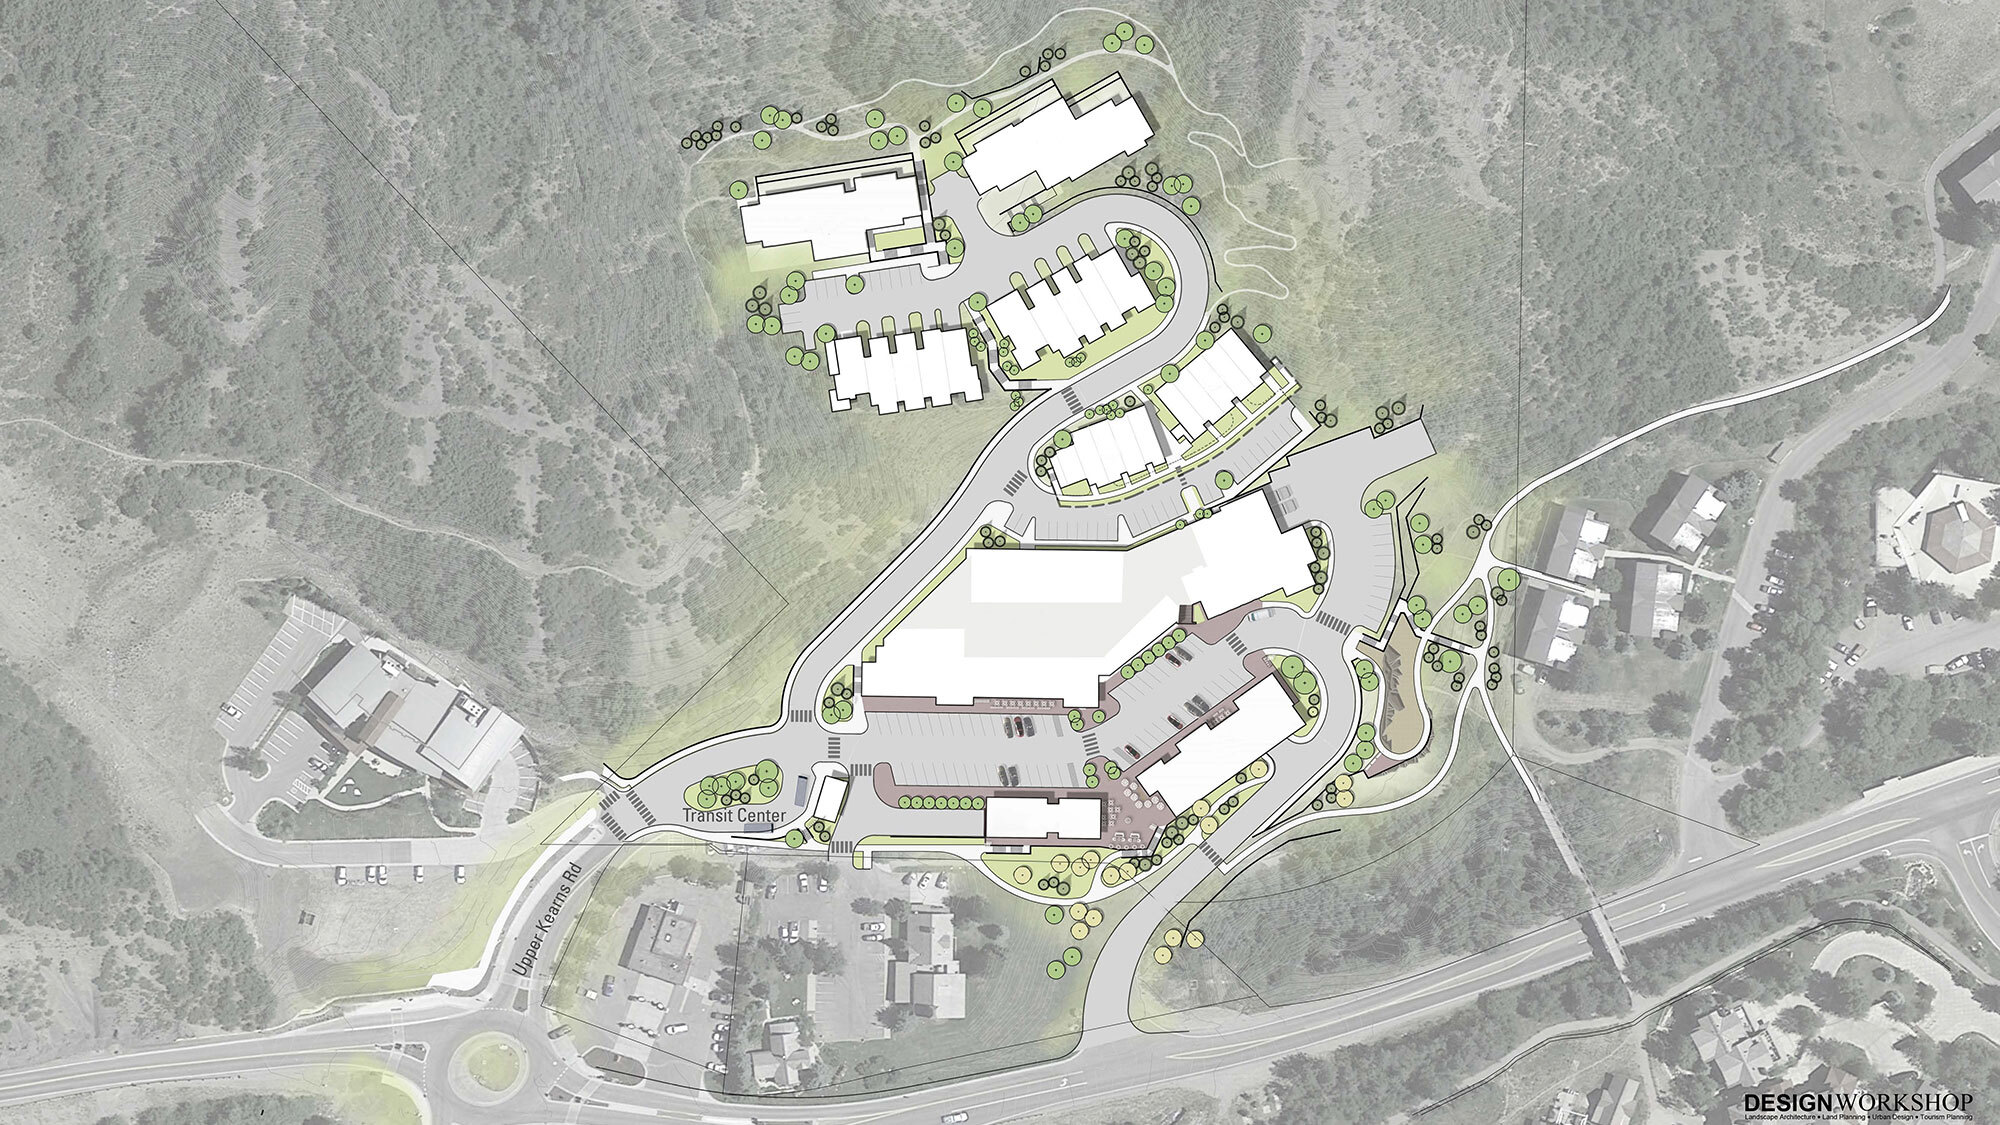 Design Workshop Snowmass Center site plan2